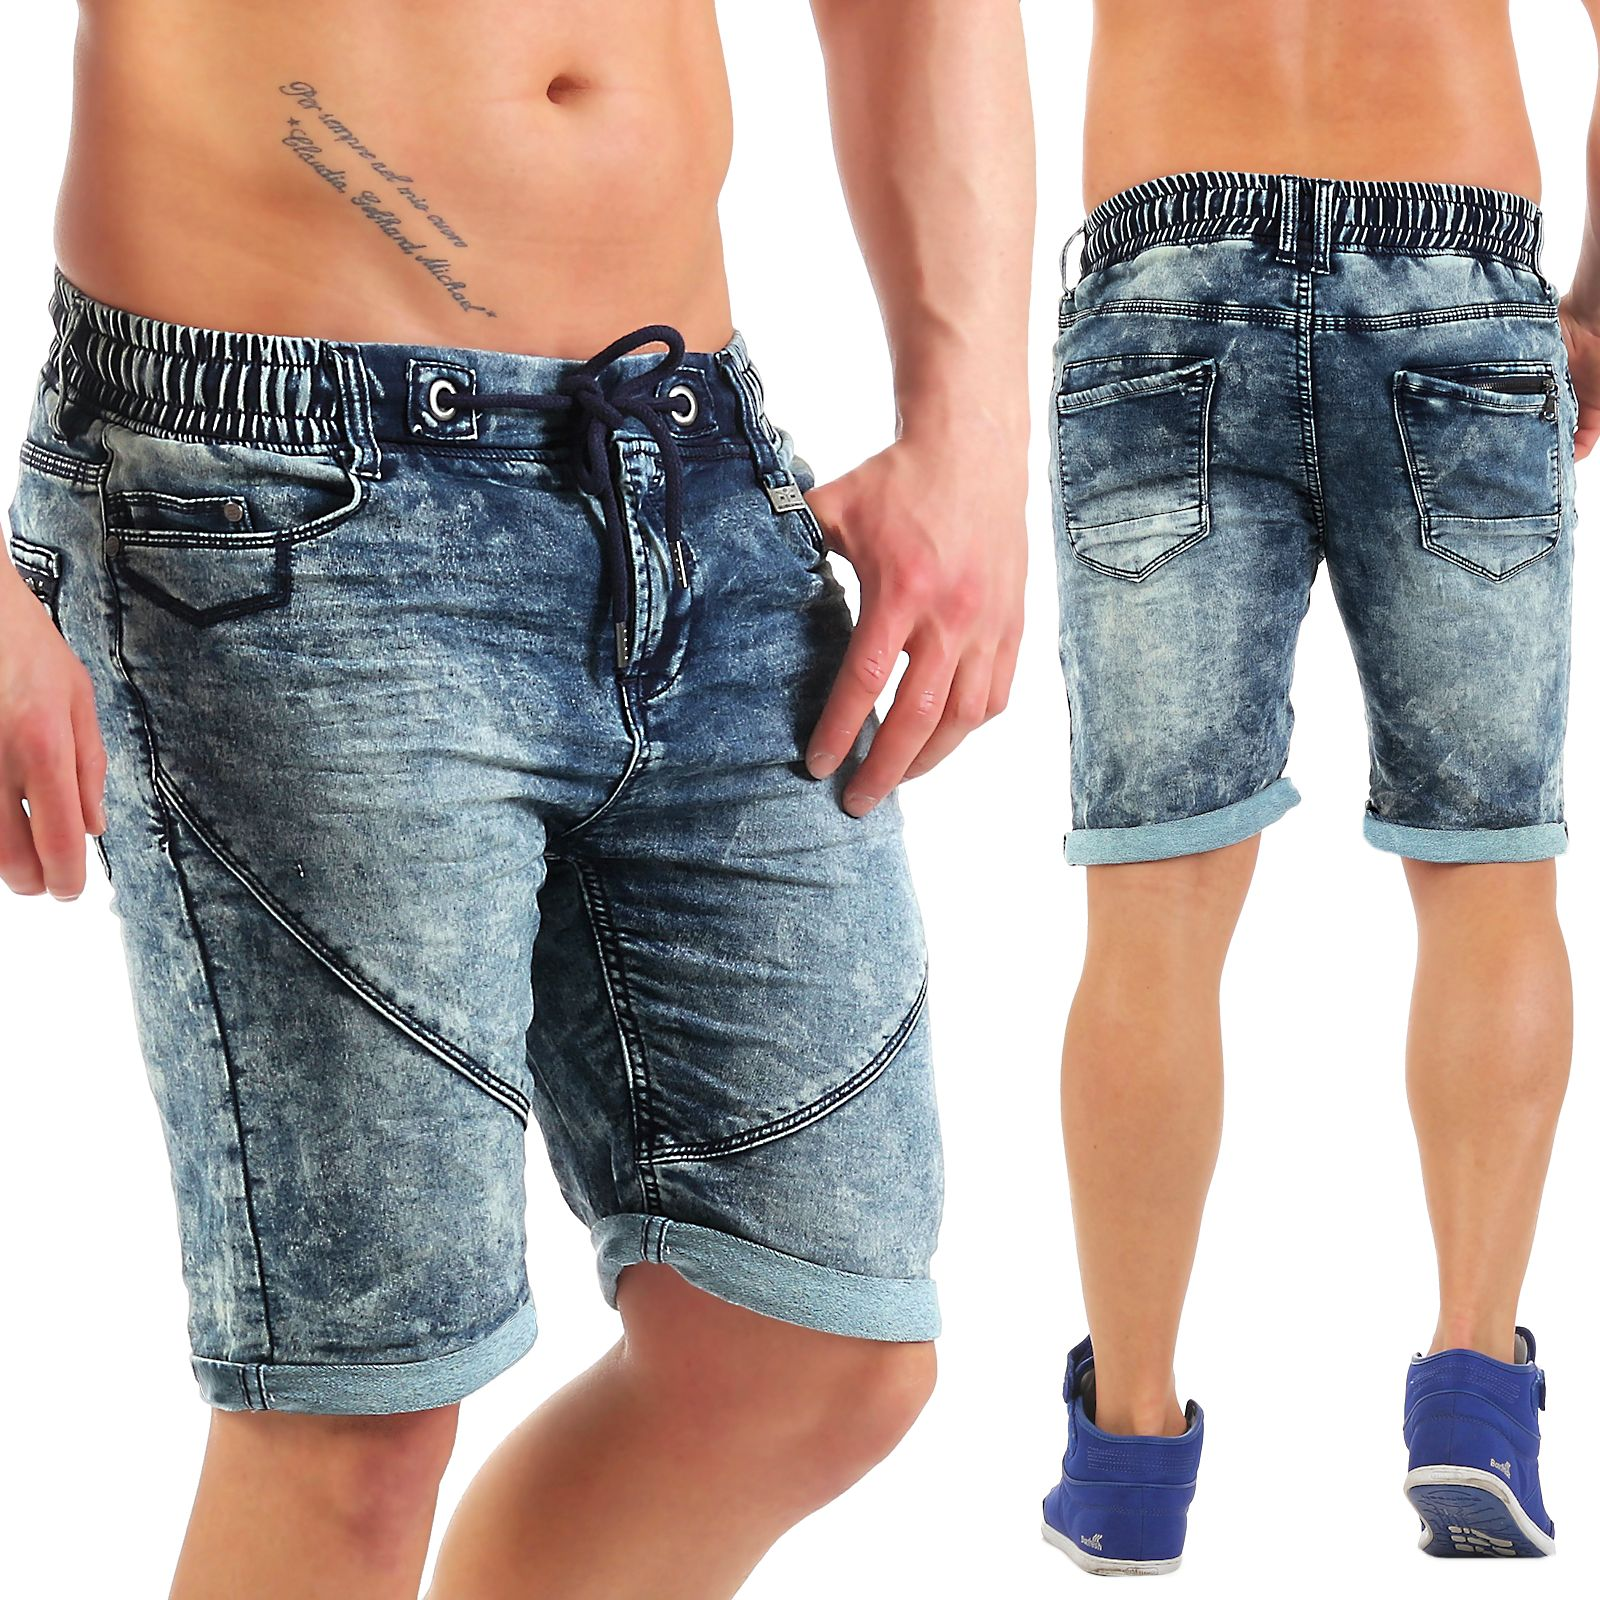 sublevel herren jogg jeans shorts zz1 kurze hose bermuda sweat short jogginghose ebay. Black Bedroom Furniture Sets. Home Design Ideas